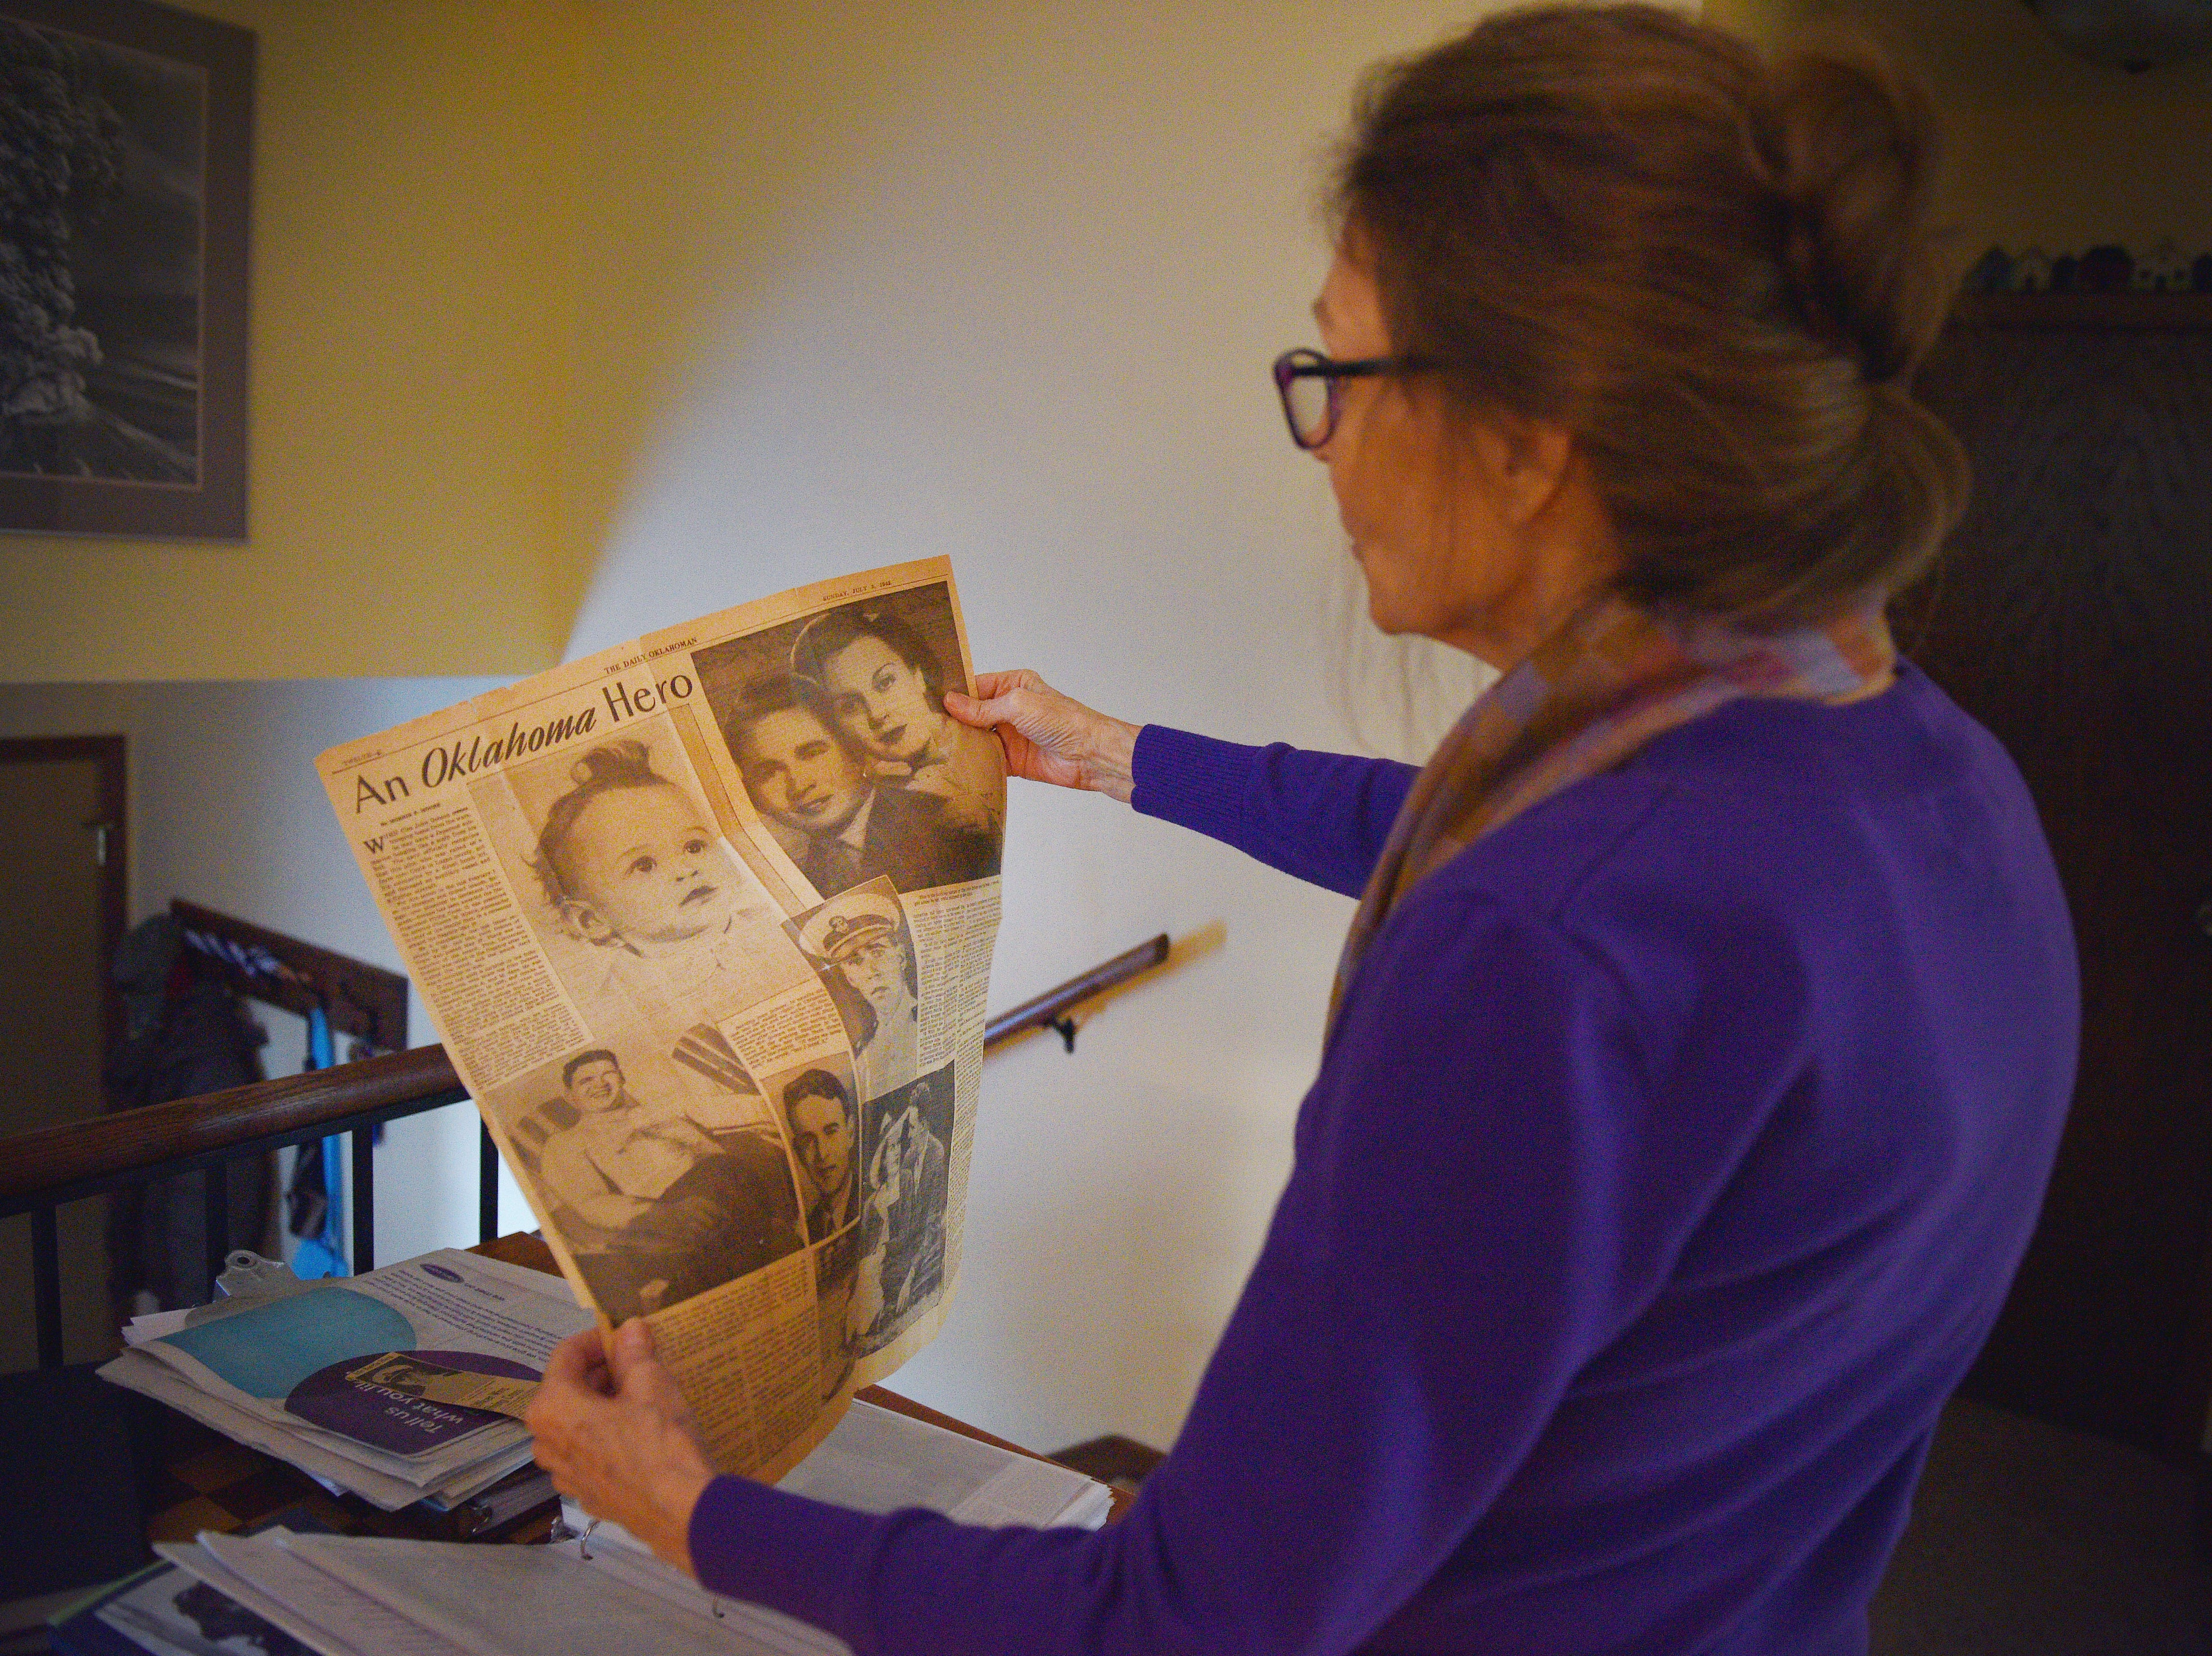 Nancy Napier looks at old newspaper clippings of her father, Cleo Dobson, Wednesday Dec. 5, in Sioux Falls. Napier's father was a U.S. Navy carrier pilot in World War II. Napier and her cousin, Carl Dobson, published the book  ÒCleo J. Dobson: U.S. Navy Carrier Pilot World War II, a Personal Account.Ó